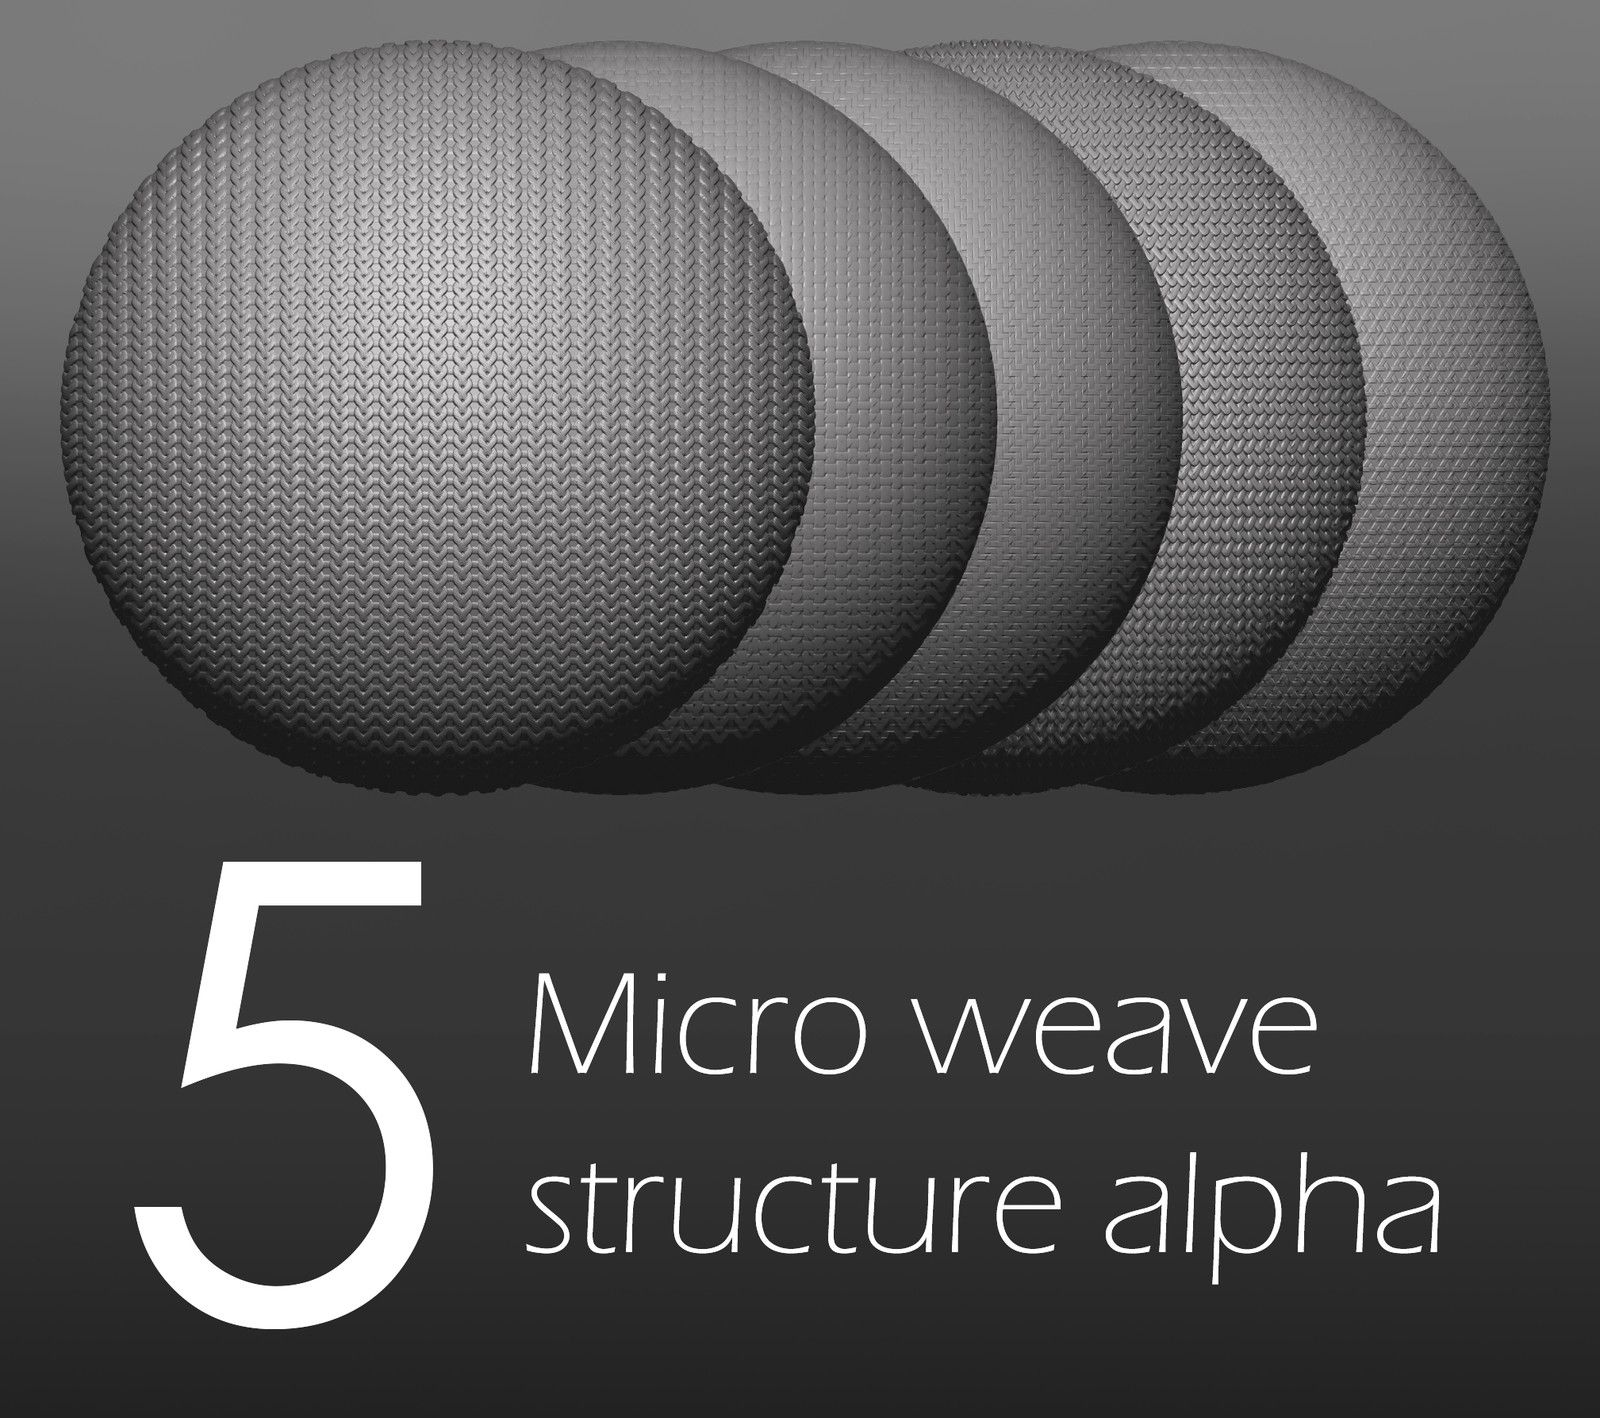 Free alphas - Micro Weave Structure, Joachim Jensen on ArtStation at https://www.artstation.com/artwork/d3voQ